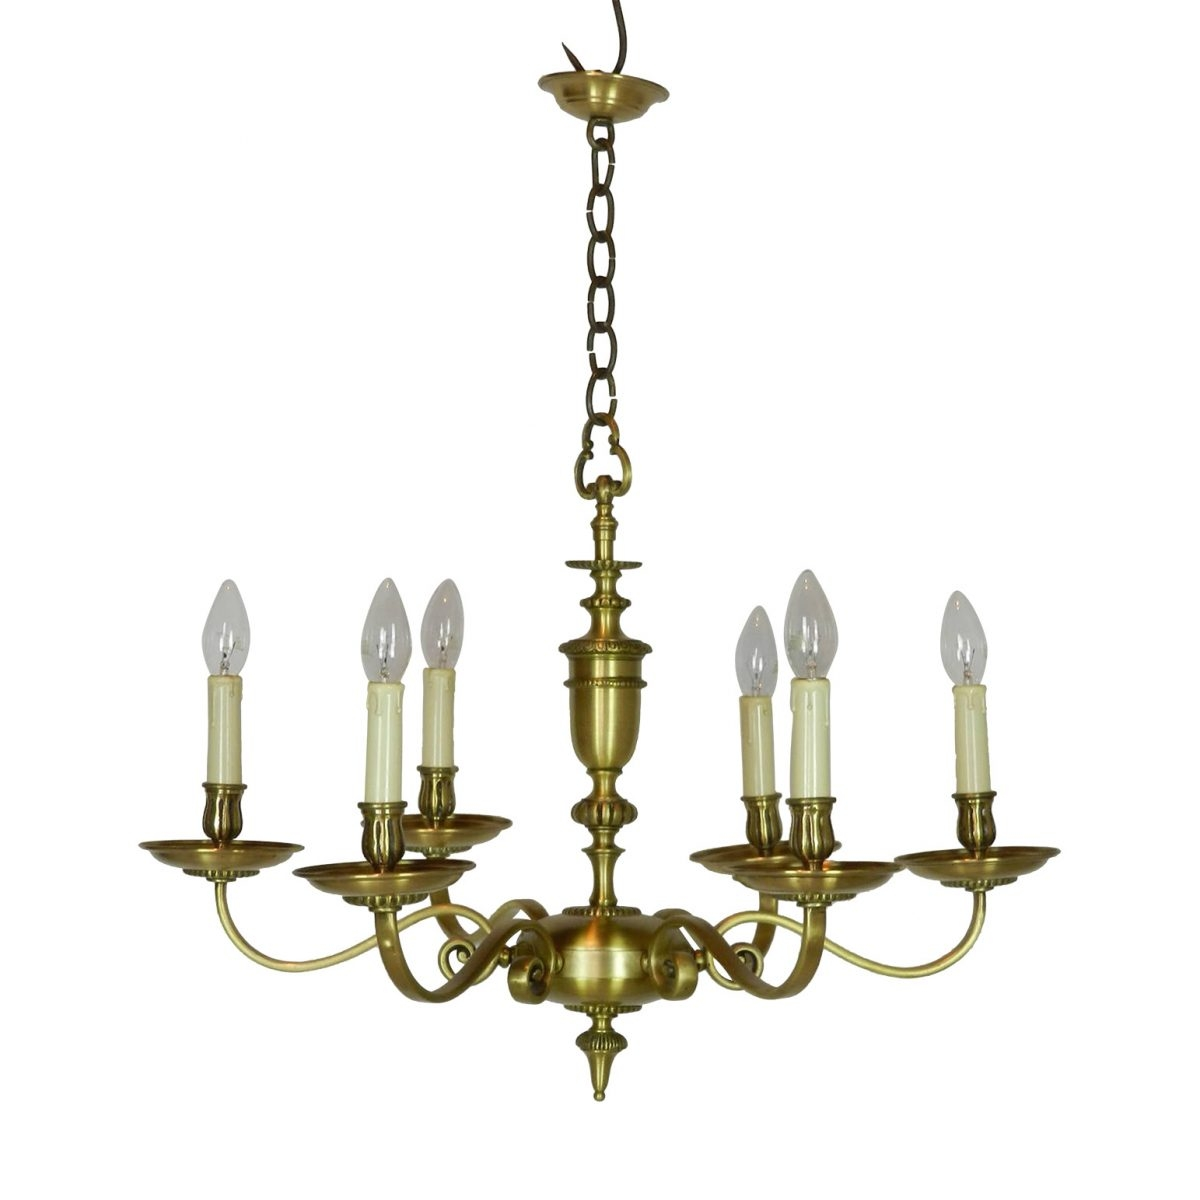 French Vintage Brass Six Light Chandelier Layer Vintage Mid Pertaining To Vintage Brass Chandeliers (Image 6 of 15)